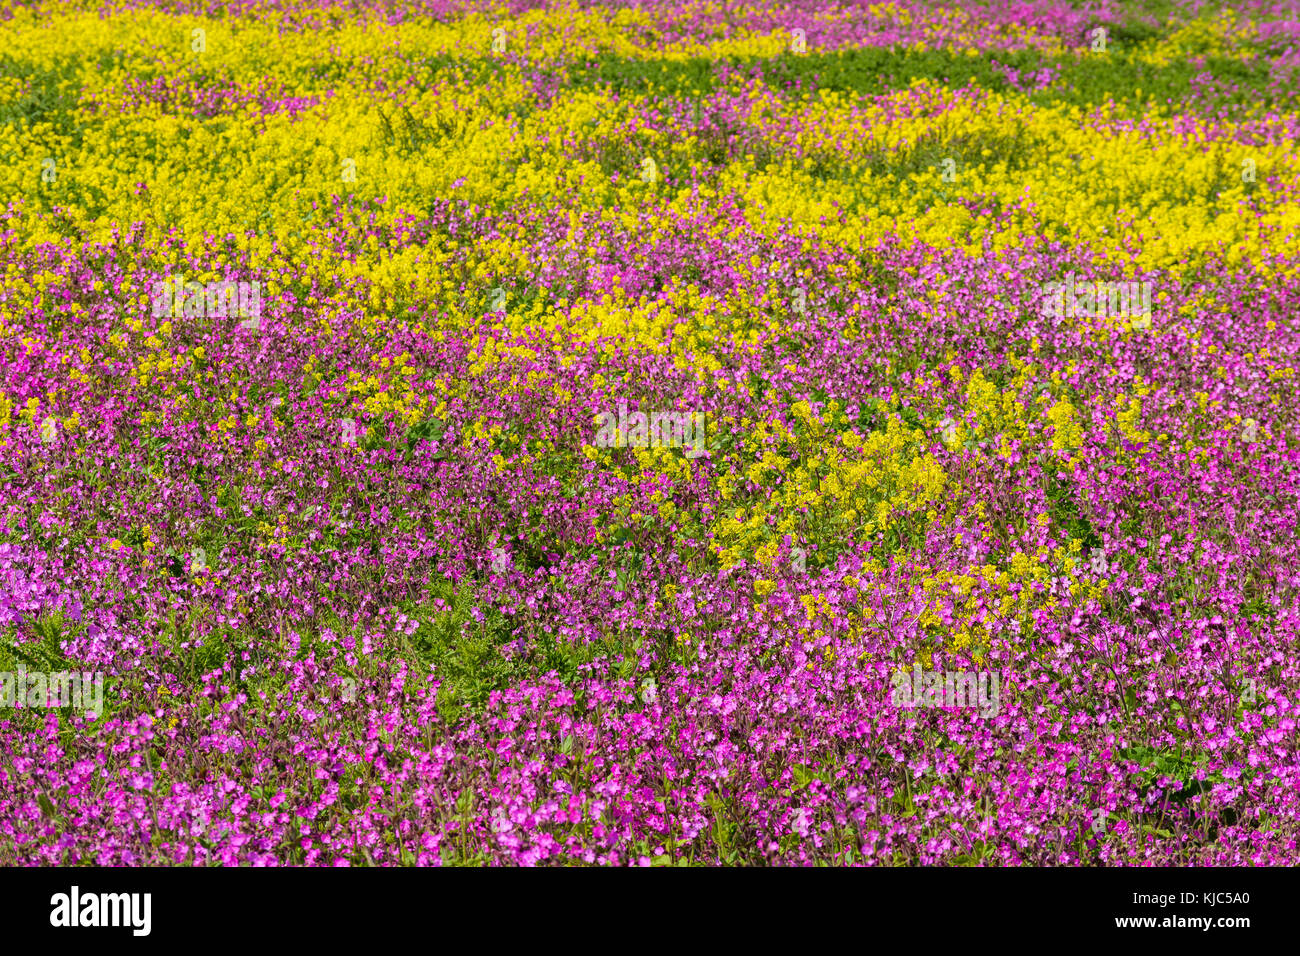 Close-up of field with pink flowers and blooming canola at Bamburgh in Northumberland, England, United Kingdom - Stock Image